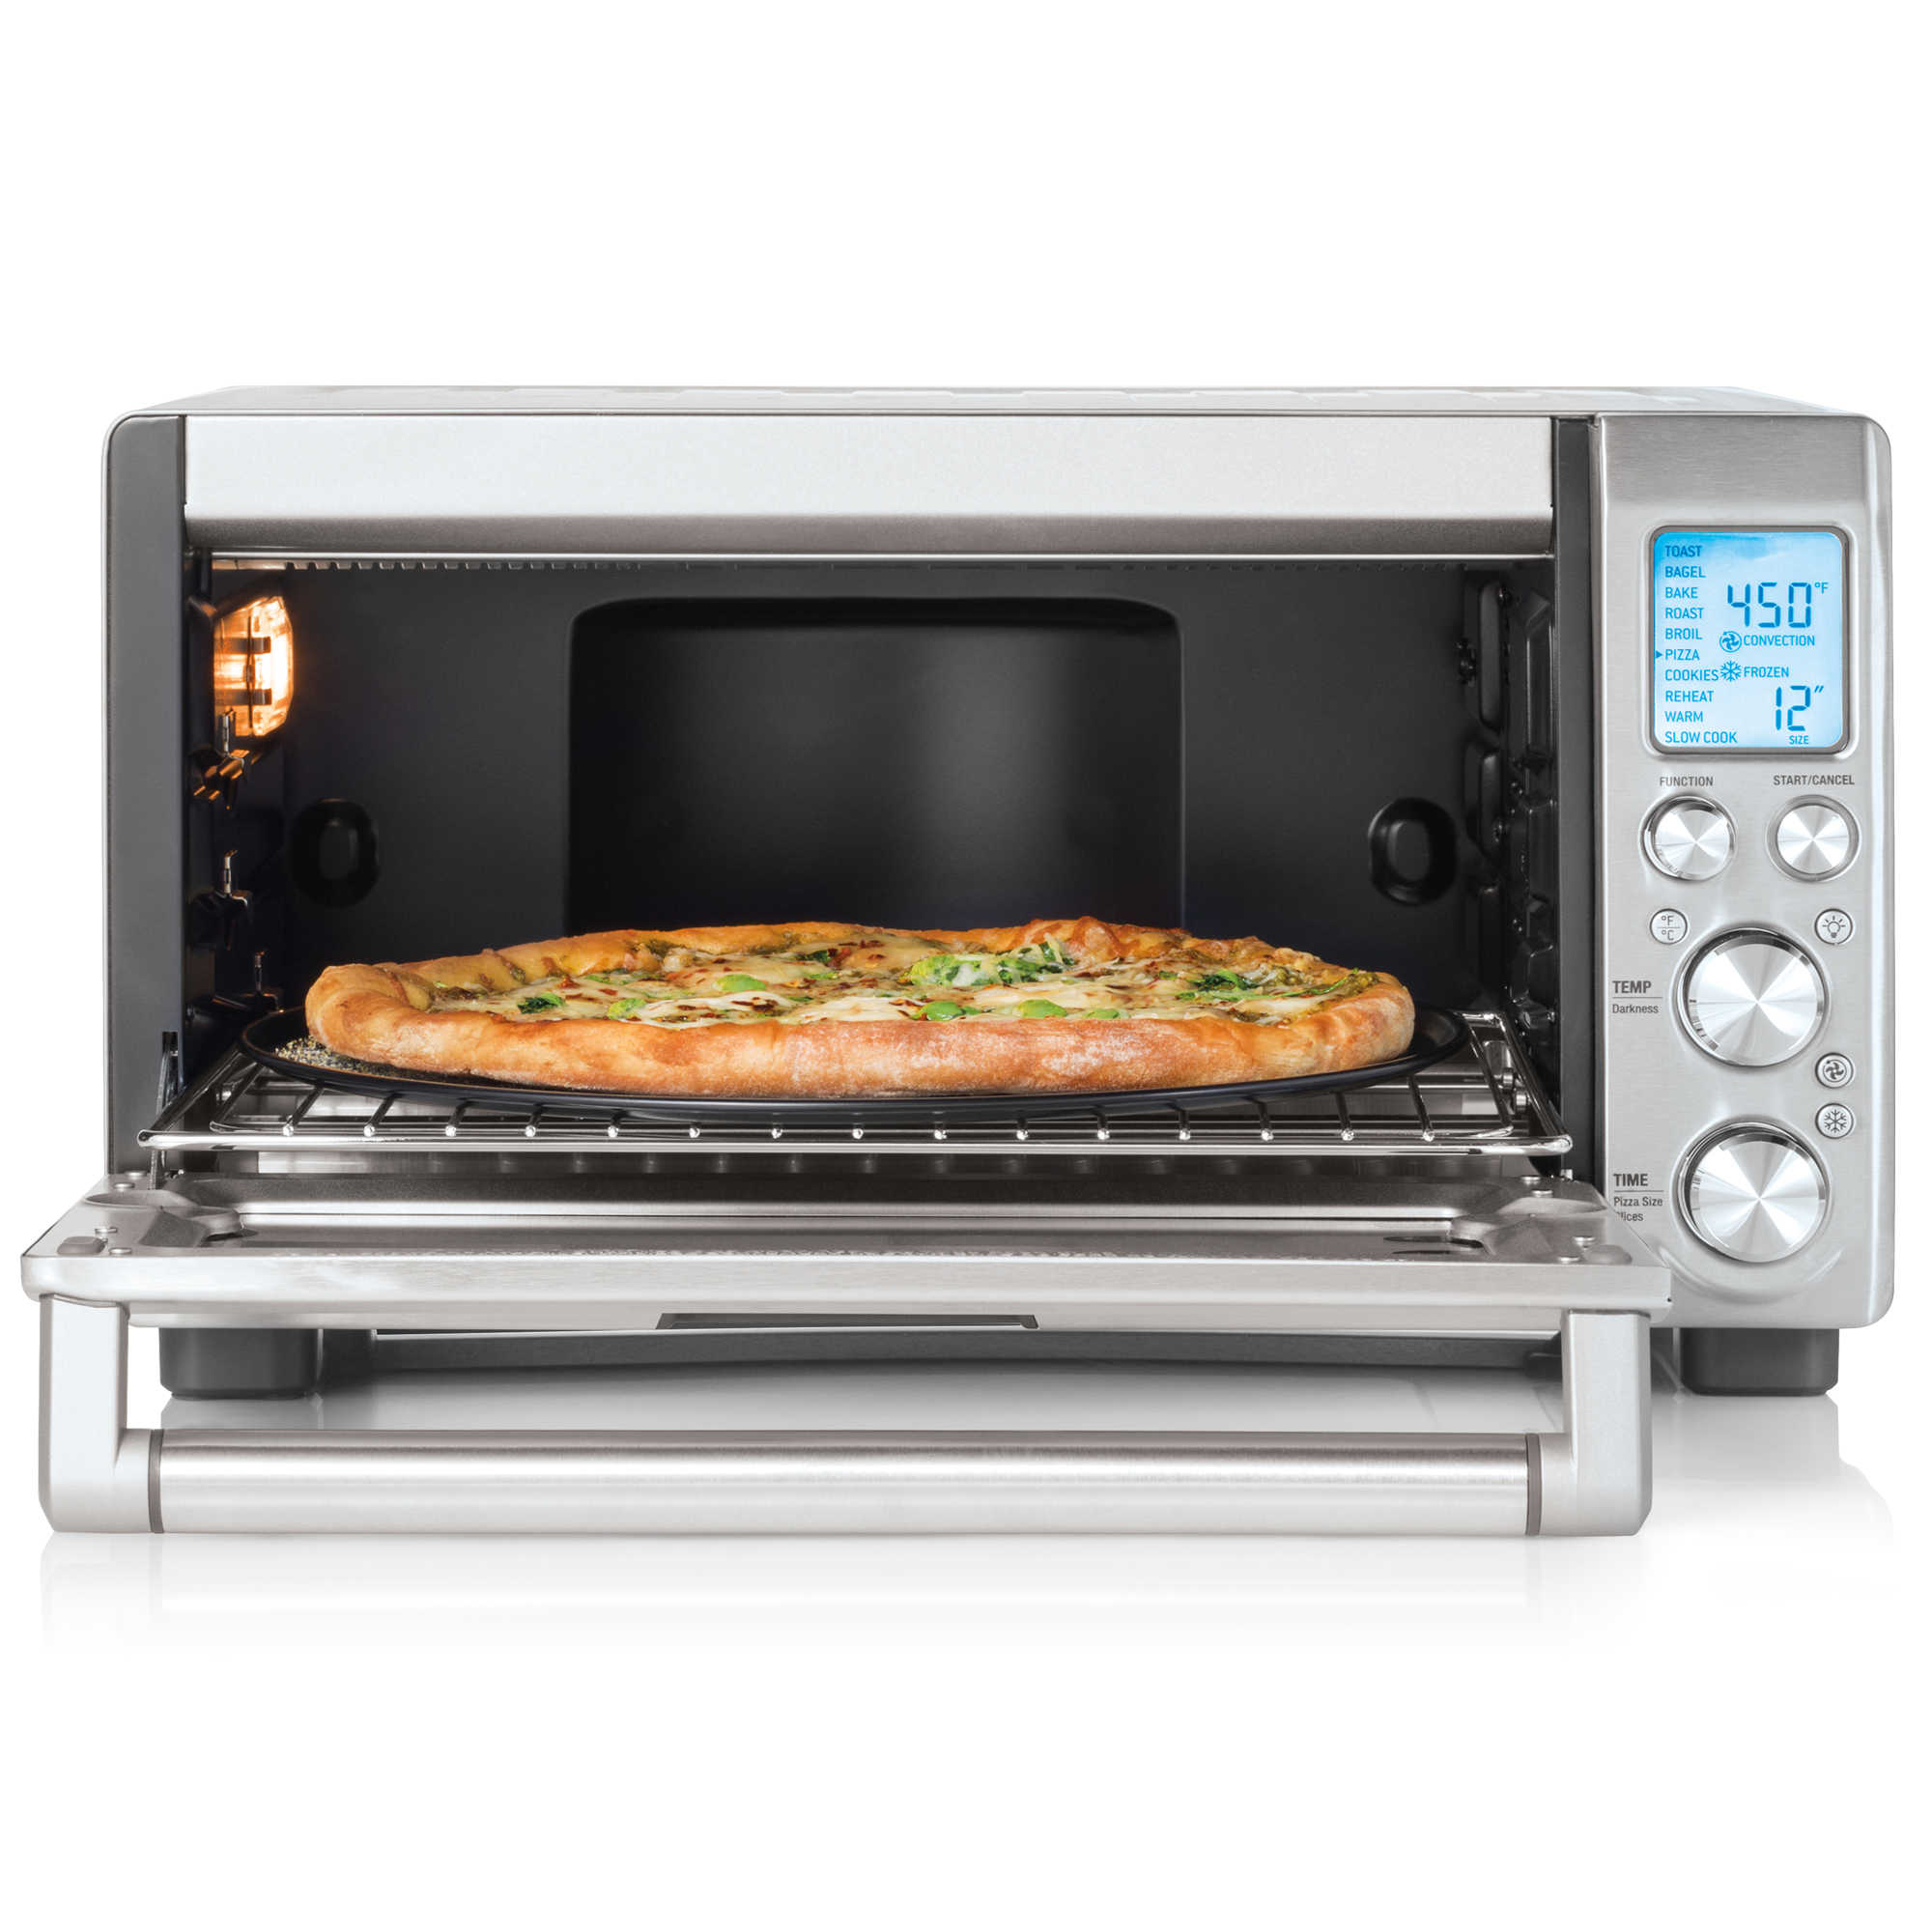 oven ft over in built digital toaster microwave fagor reviews